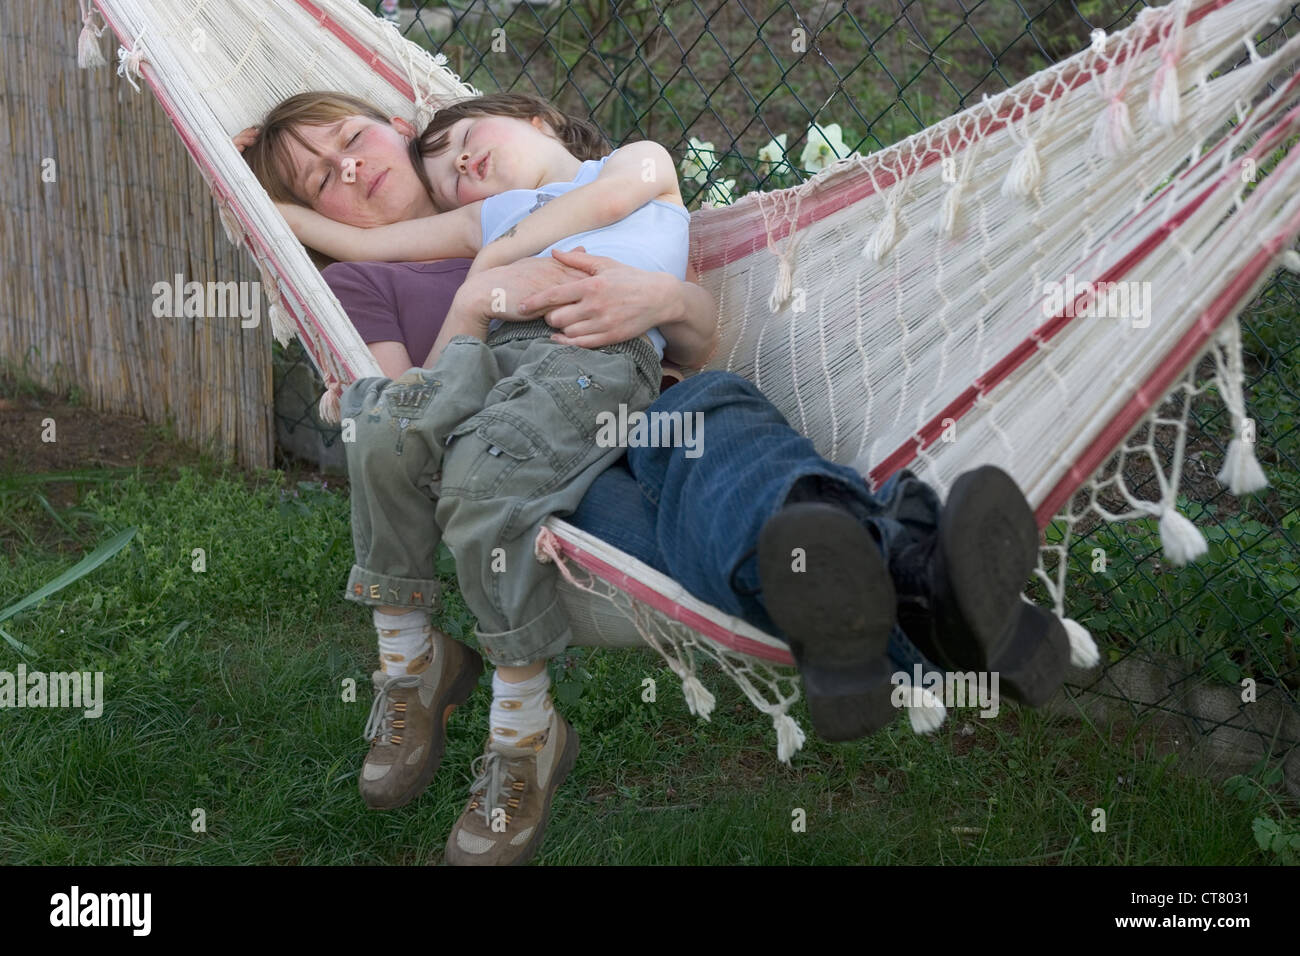 Mother And Child Sleeping In A Hammock Stock Photo